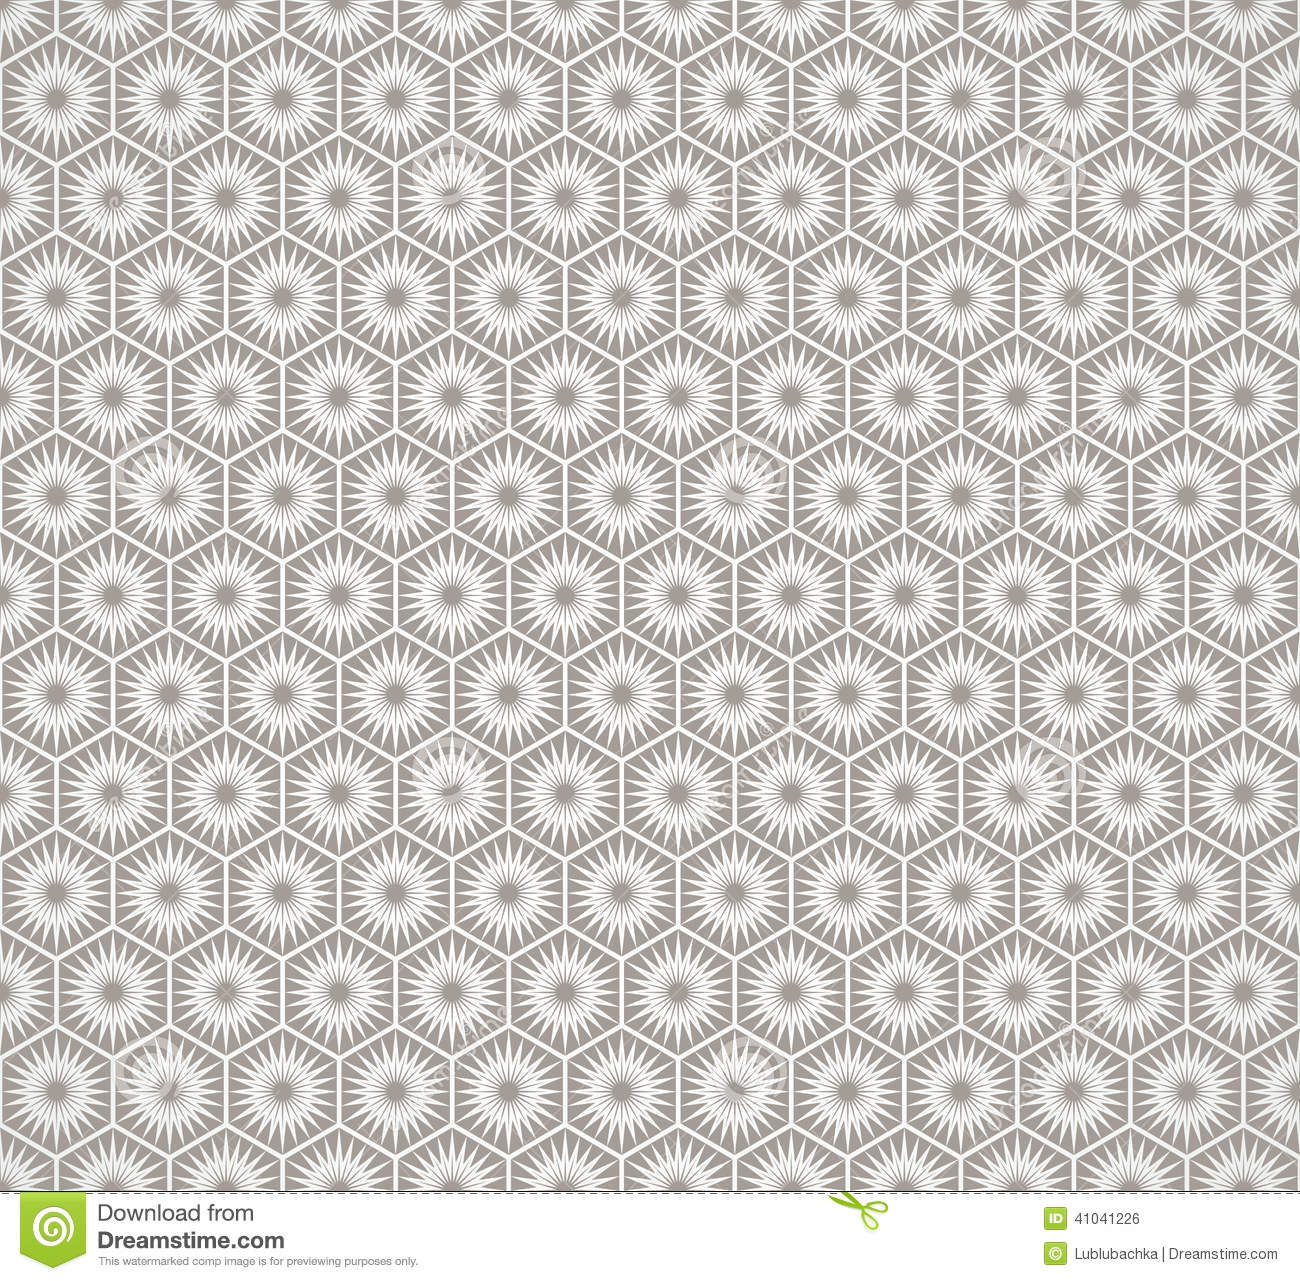 Black White And Silver Striped Wallpaper Art Deco Seamless Vintage Wallpaper Pattern Stock Vector